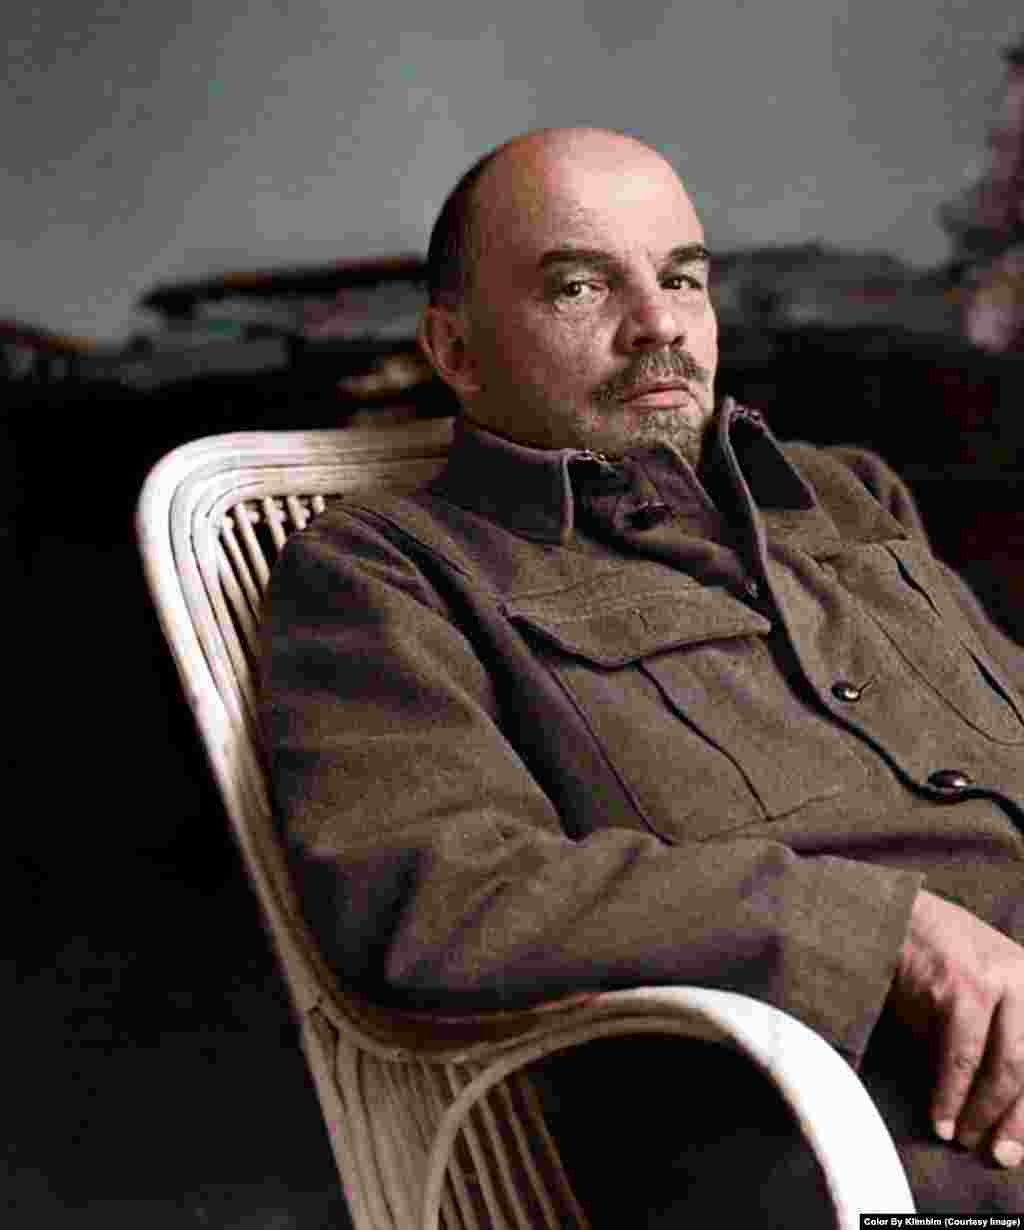 You can almost hear the wicker creak in this image of Lenin. Shirnina read a firsthand description of Lenin's eye color before beginning work on the portrait.